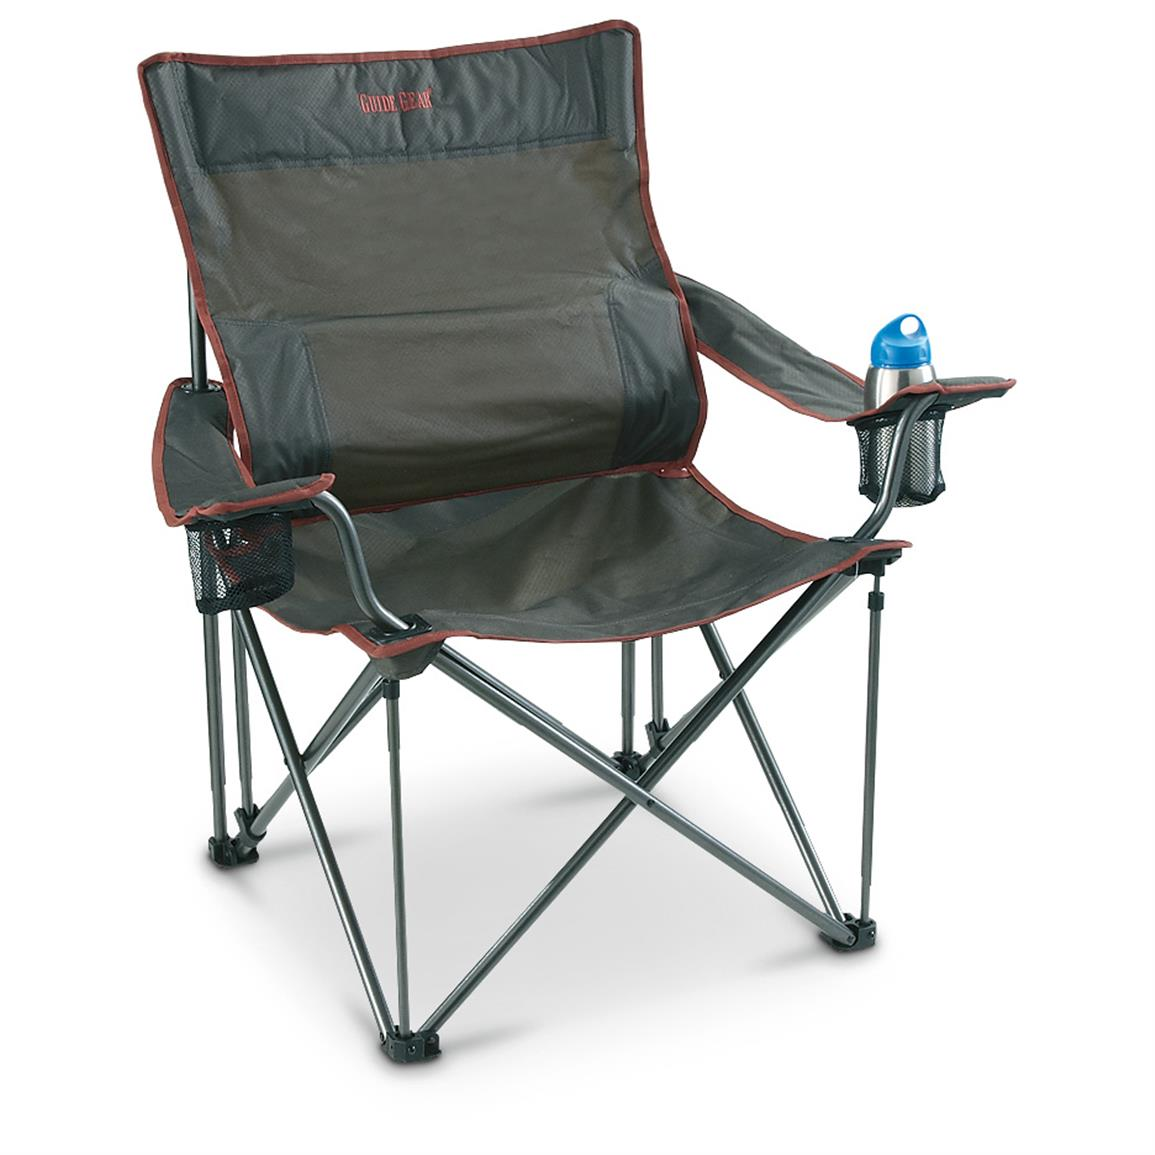 Campfire Chairs Guide Gear Full Back Folding Camping Arm Chair 623494